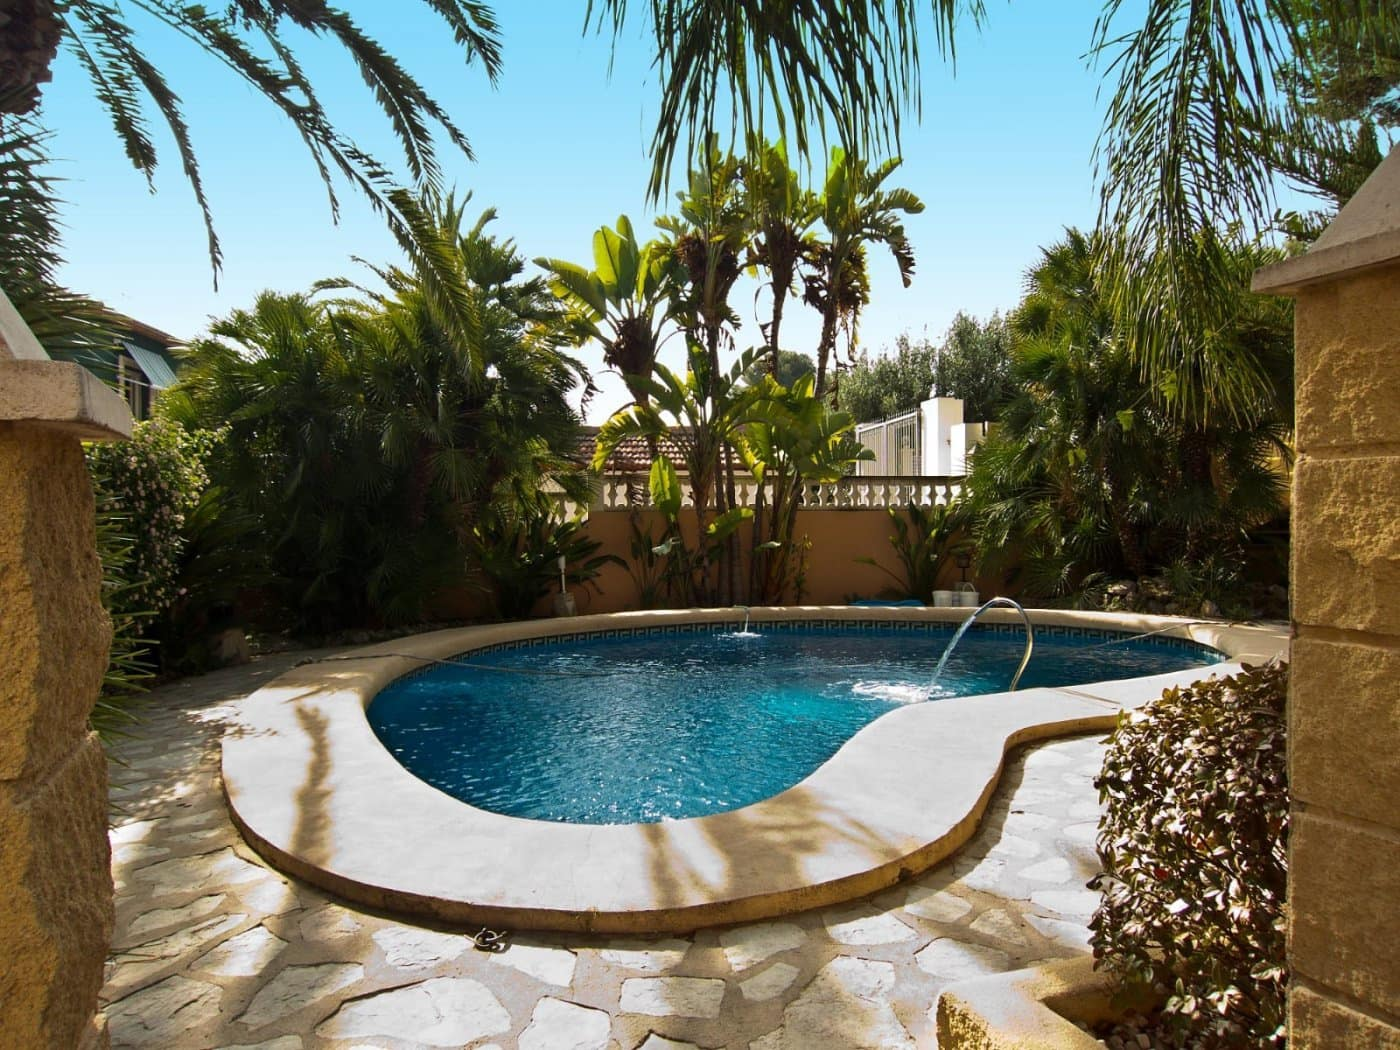 4 bedroom Villa for holiday rental in Denia with pool garage - € 2,420 (Ref: 5267697)